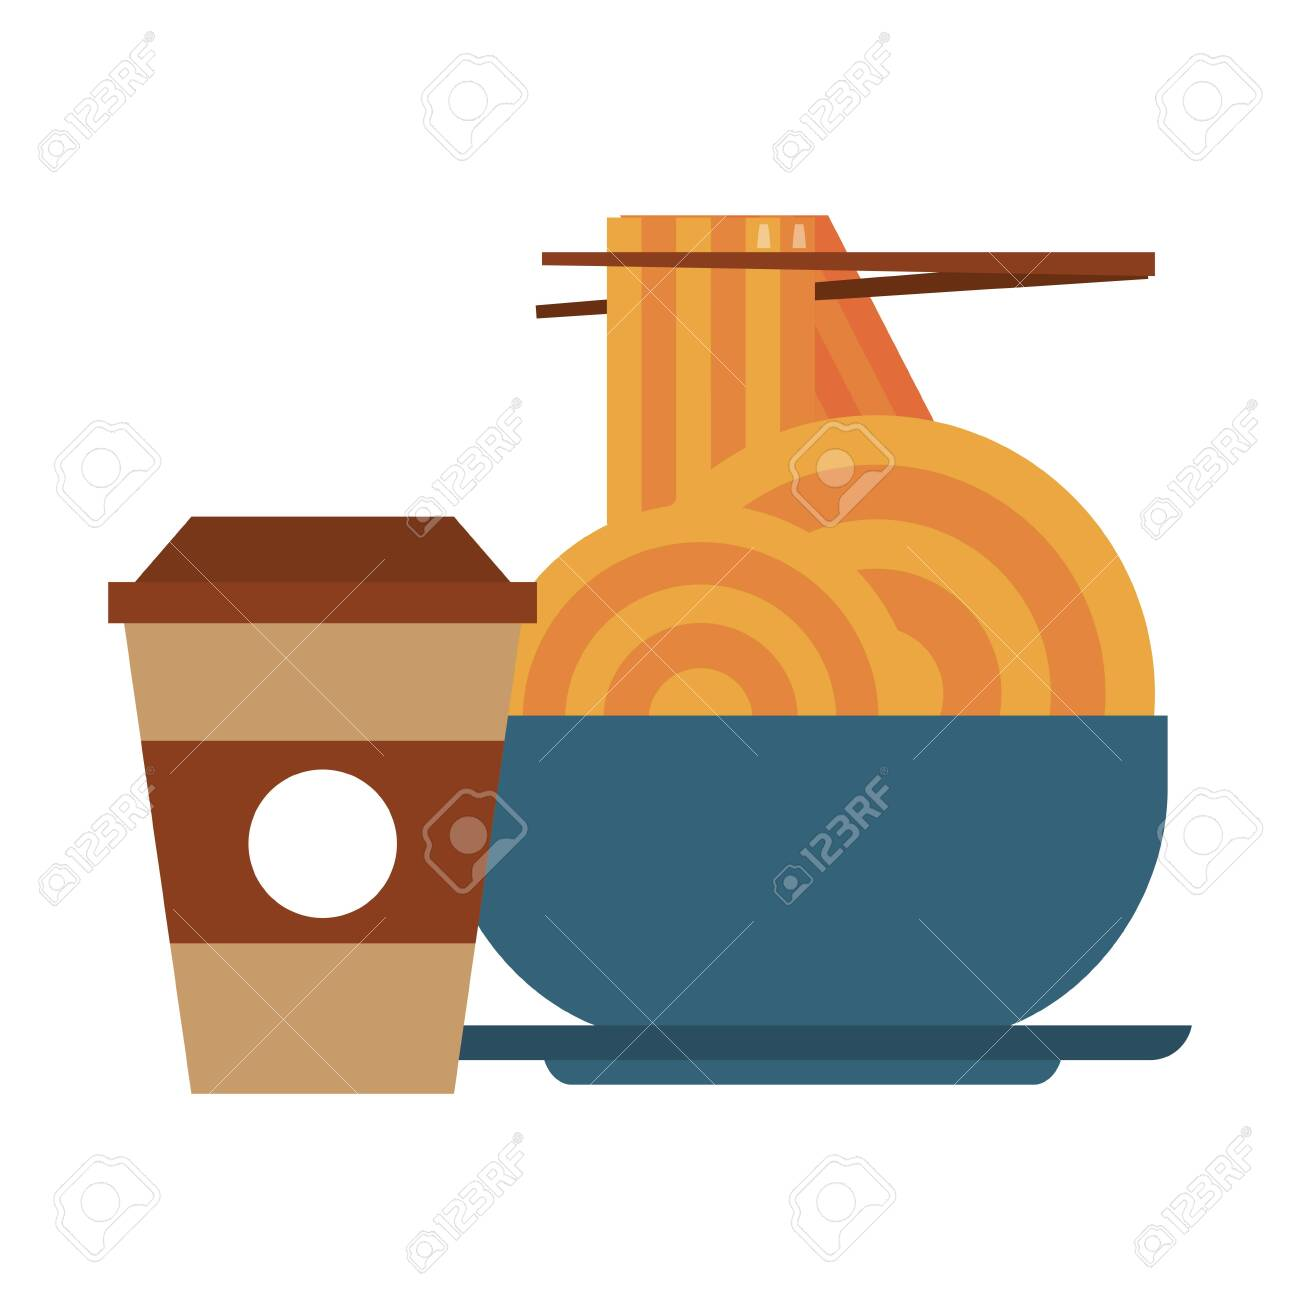 Restaurant Food And Cuisine With Chinese Food With Chopstick Spaghetti On A Bowl And Coffee Cup Icon Cartoons Vector Illustration Graphic Design Ilustraciones Vectoriales Clip Art Vectorizado Libre De Derechos Image 136476767